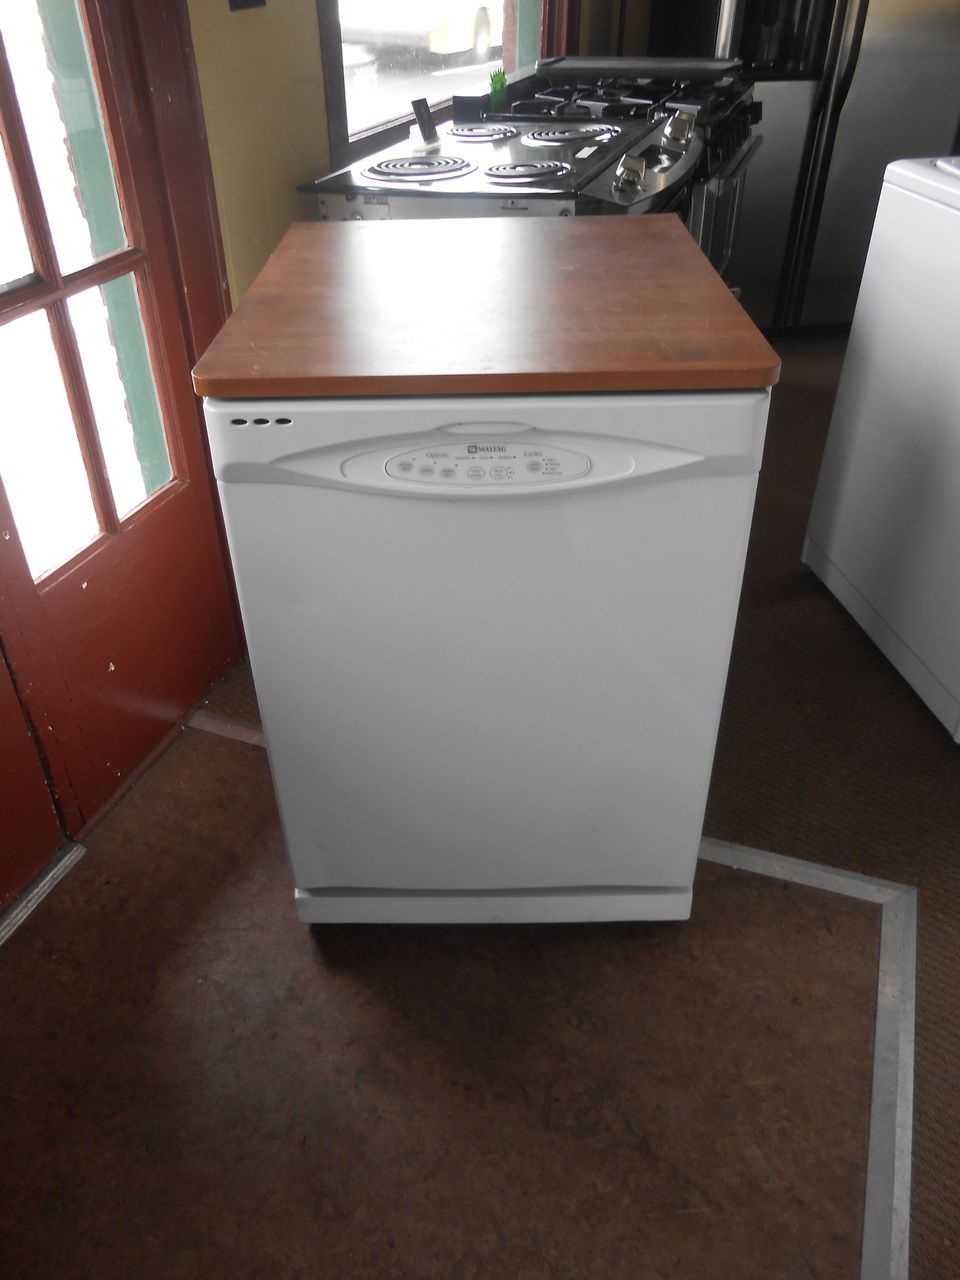 Appliance City Maytag Portable Dishwasher 3 Cycle Plus Rinse Only Hi Temperature Wash Option Delayed